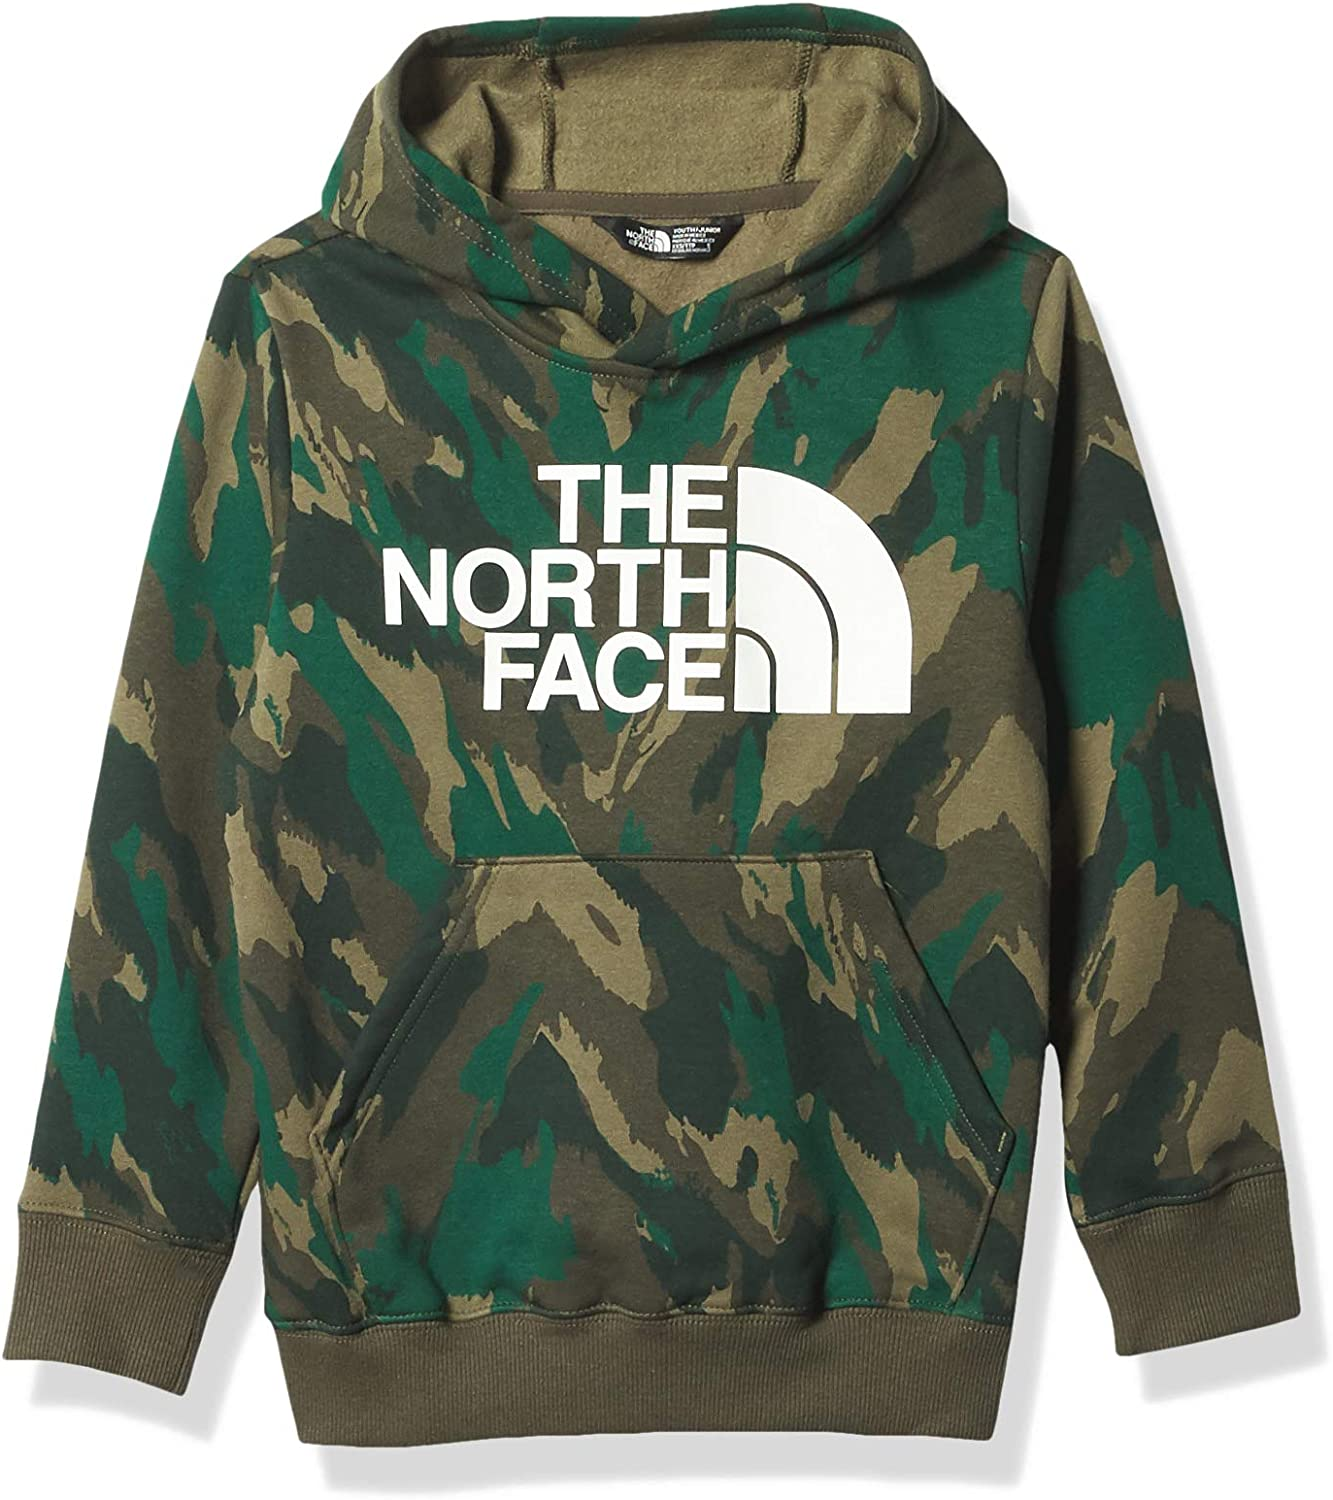 The North Face Youth Logowear Pullover Hoodie Sweatshirt: Clothing